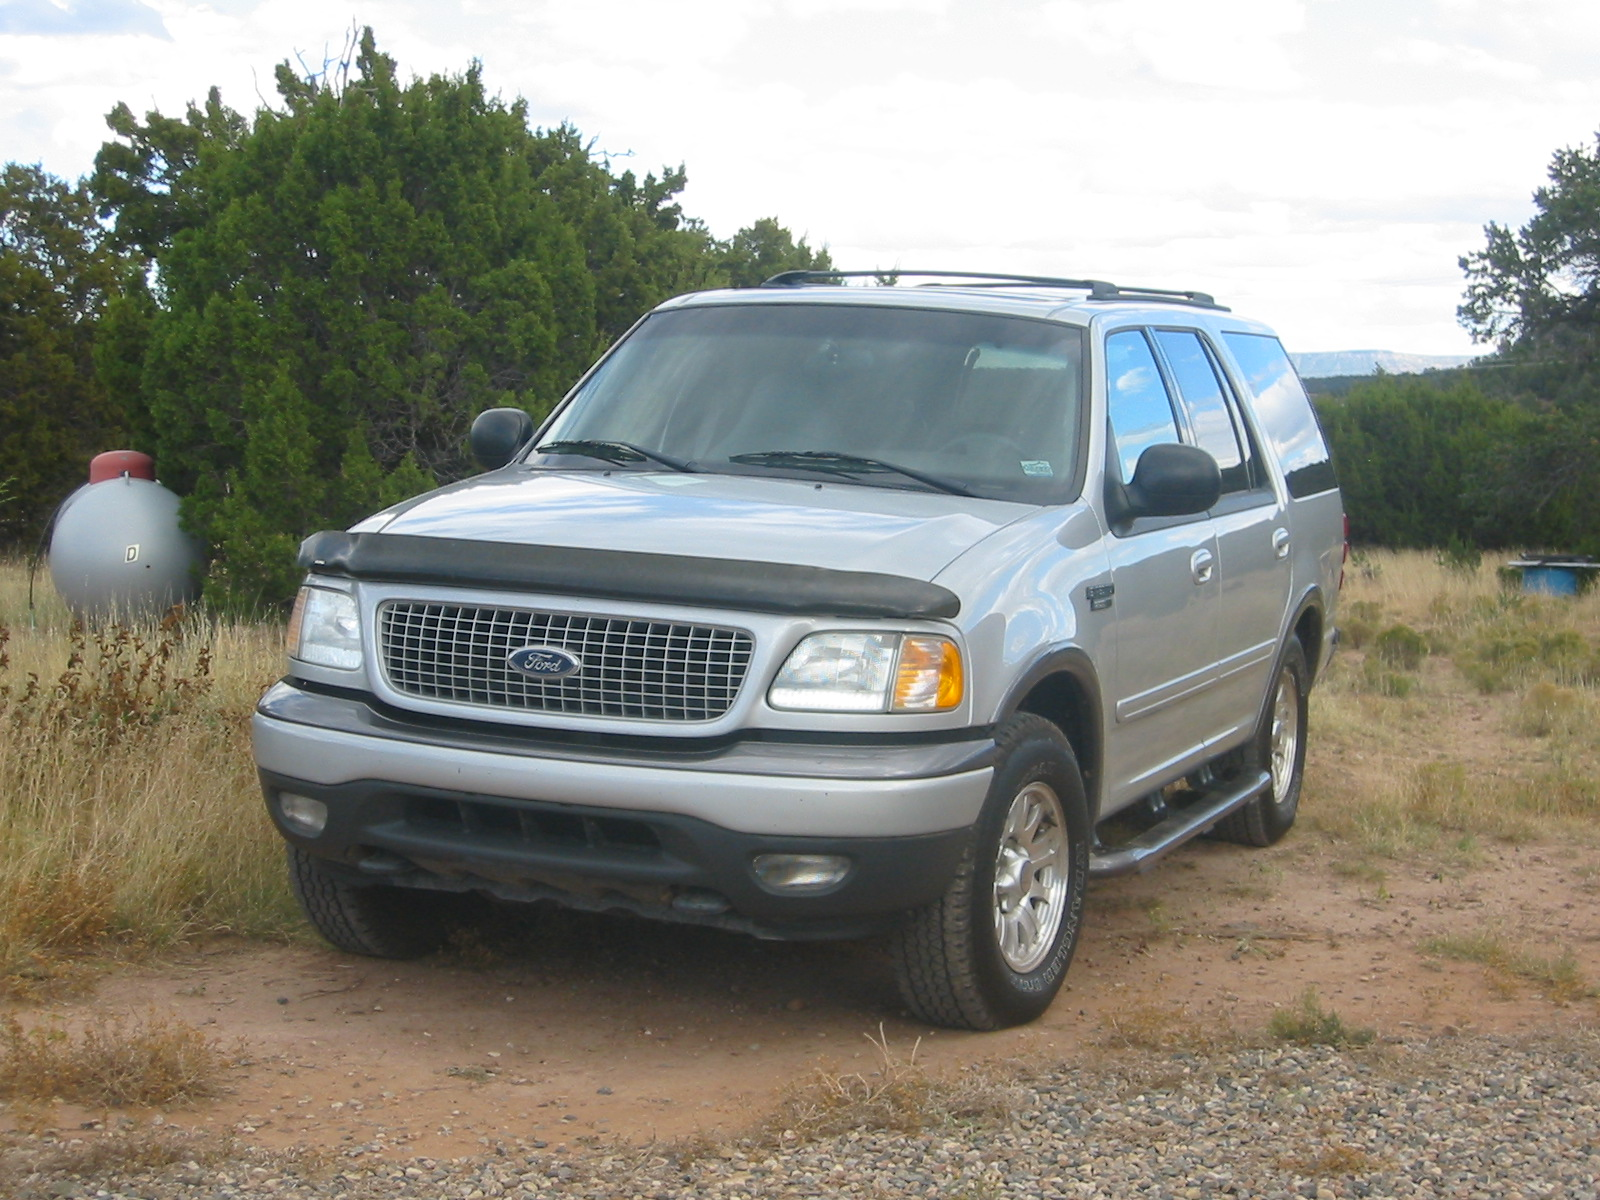 2002 Ford Expedition #8